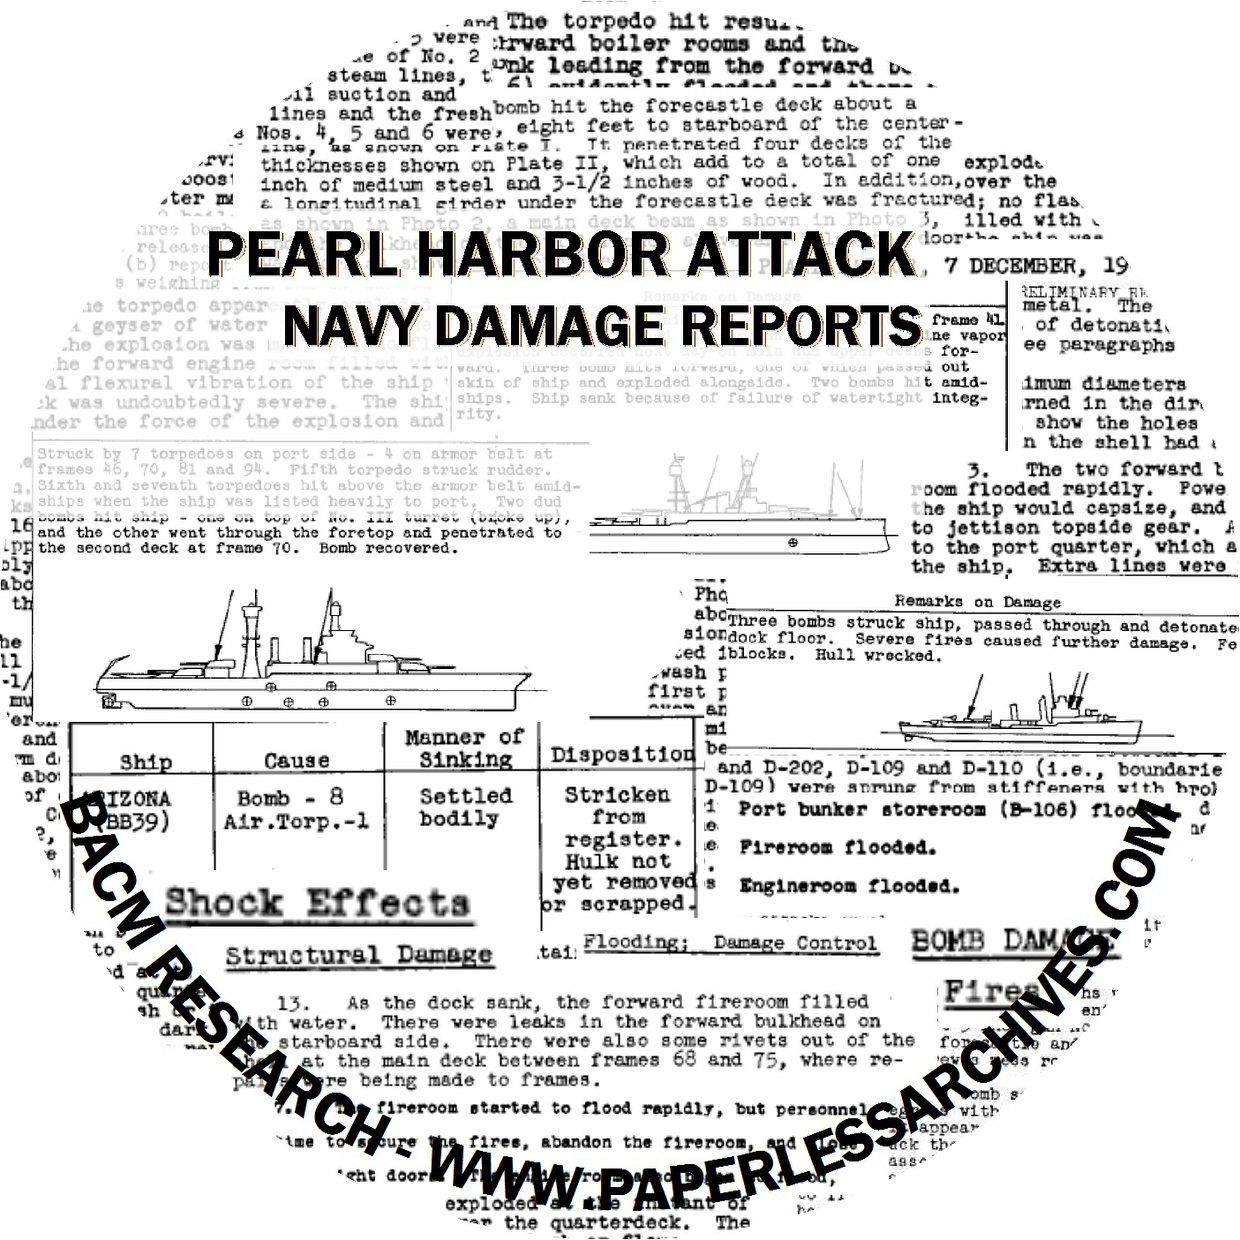 World War II: Pearl Harbor Attack Damage Reports & Photos